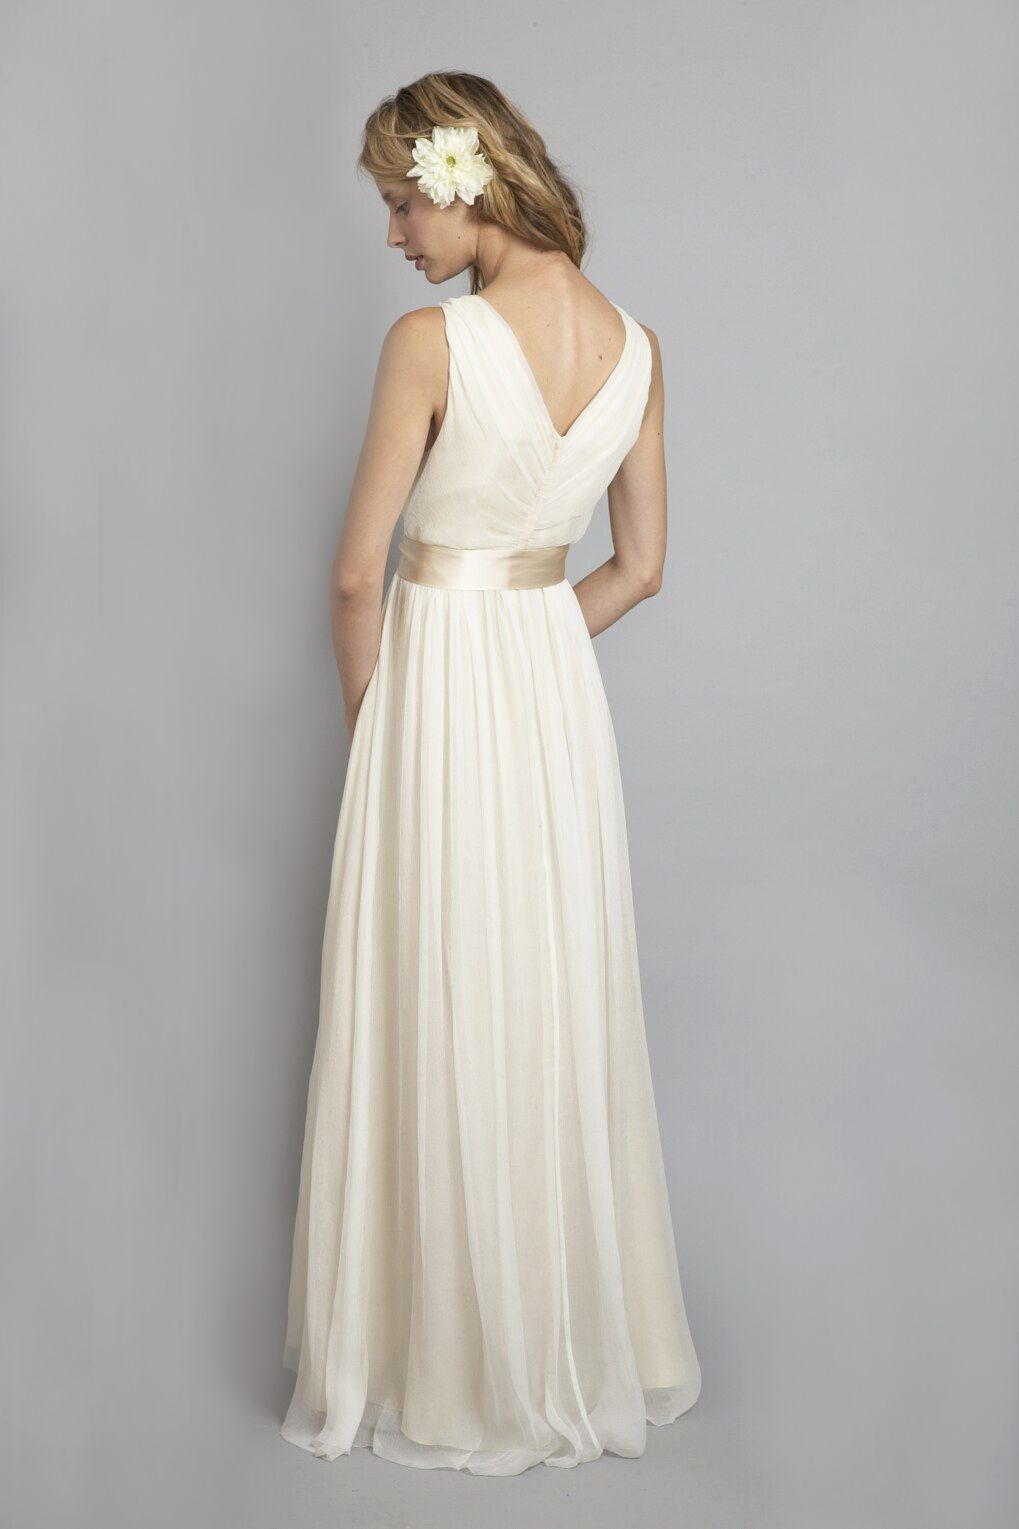 DU6556 l This timeless, elegant v-neck chiffon dress is bra friendly and looks great on just about any body shape. We recommend playing with different types of embellished sashes to make the dress unique for any of our Saja Brides. #sajawedding